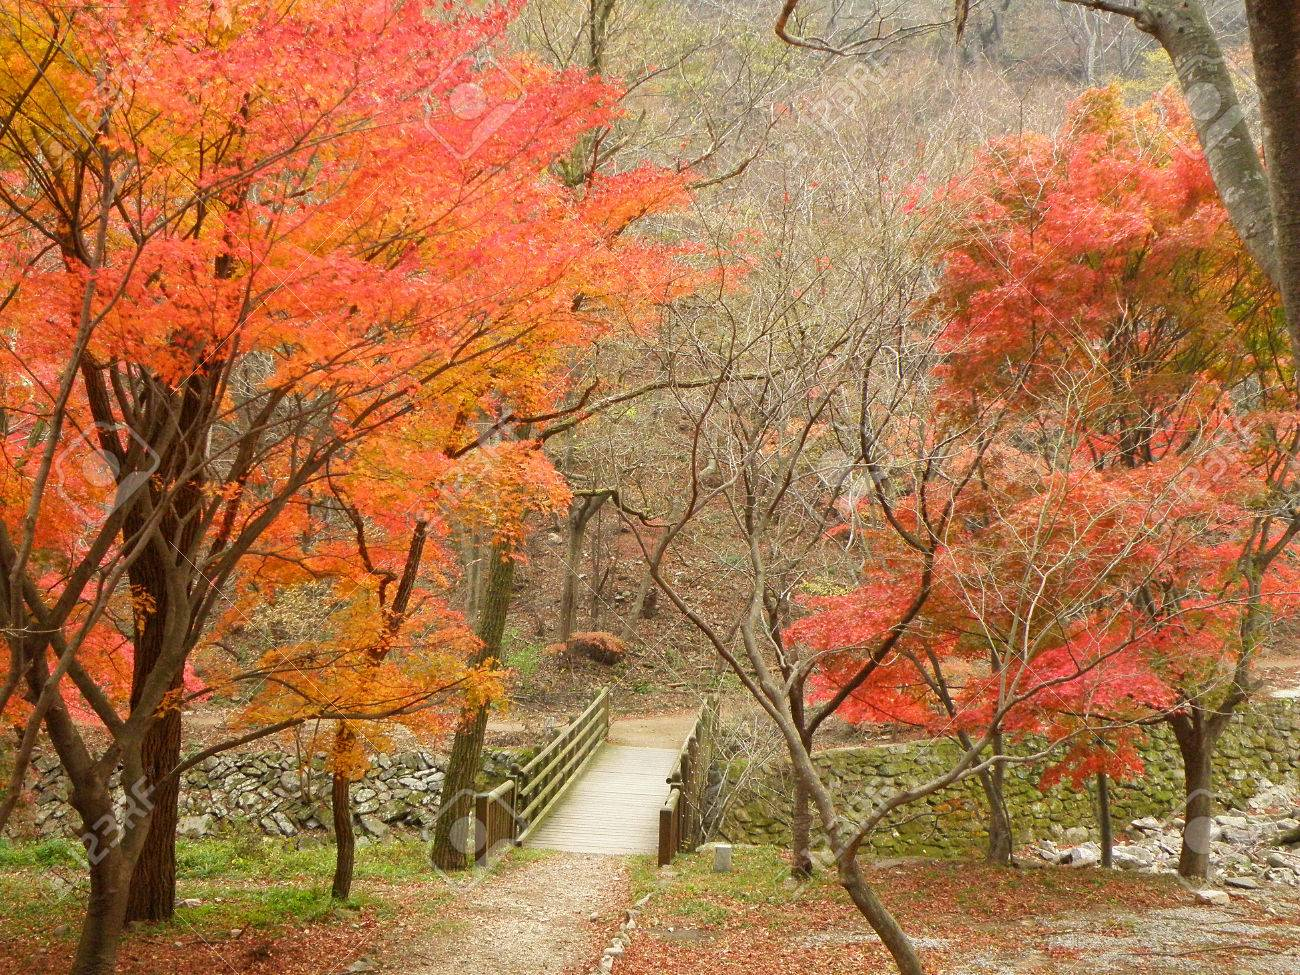 9aadb76ea5c82 Small Wooden Bridge amongst the Beautiful Colors of Fall Foliage on the  Mountainside in South Korea